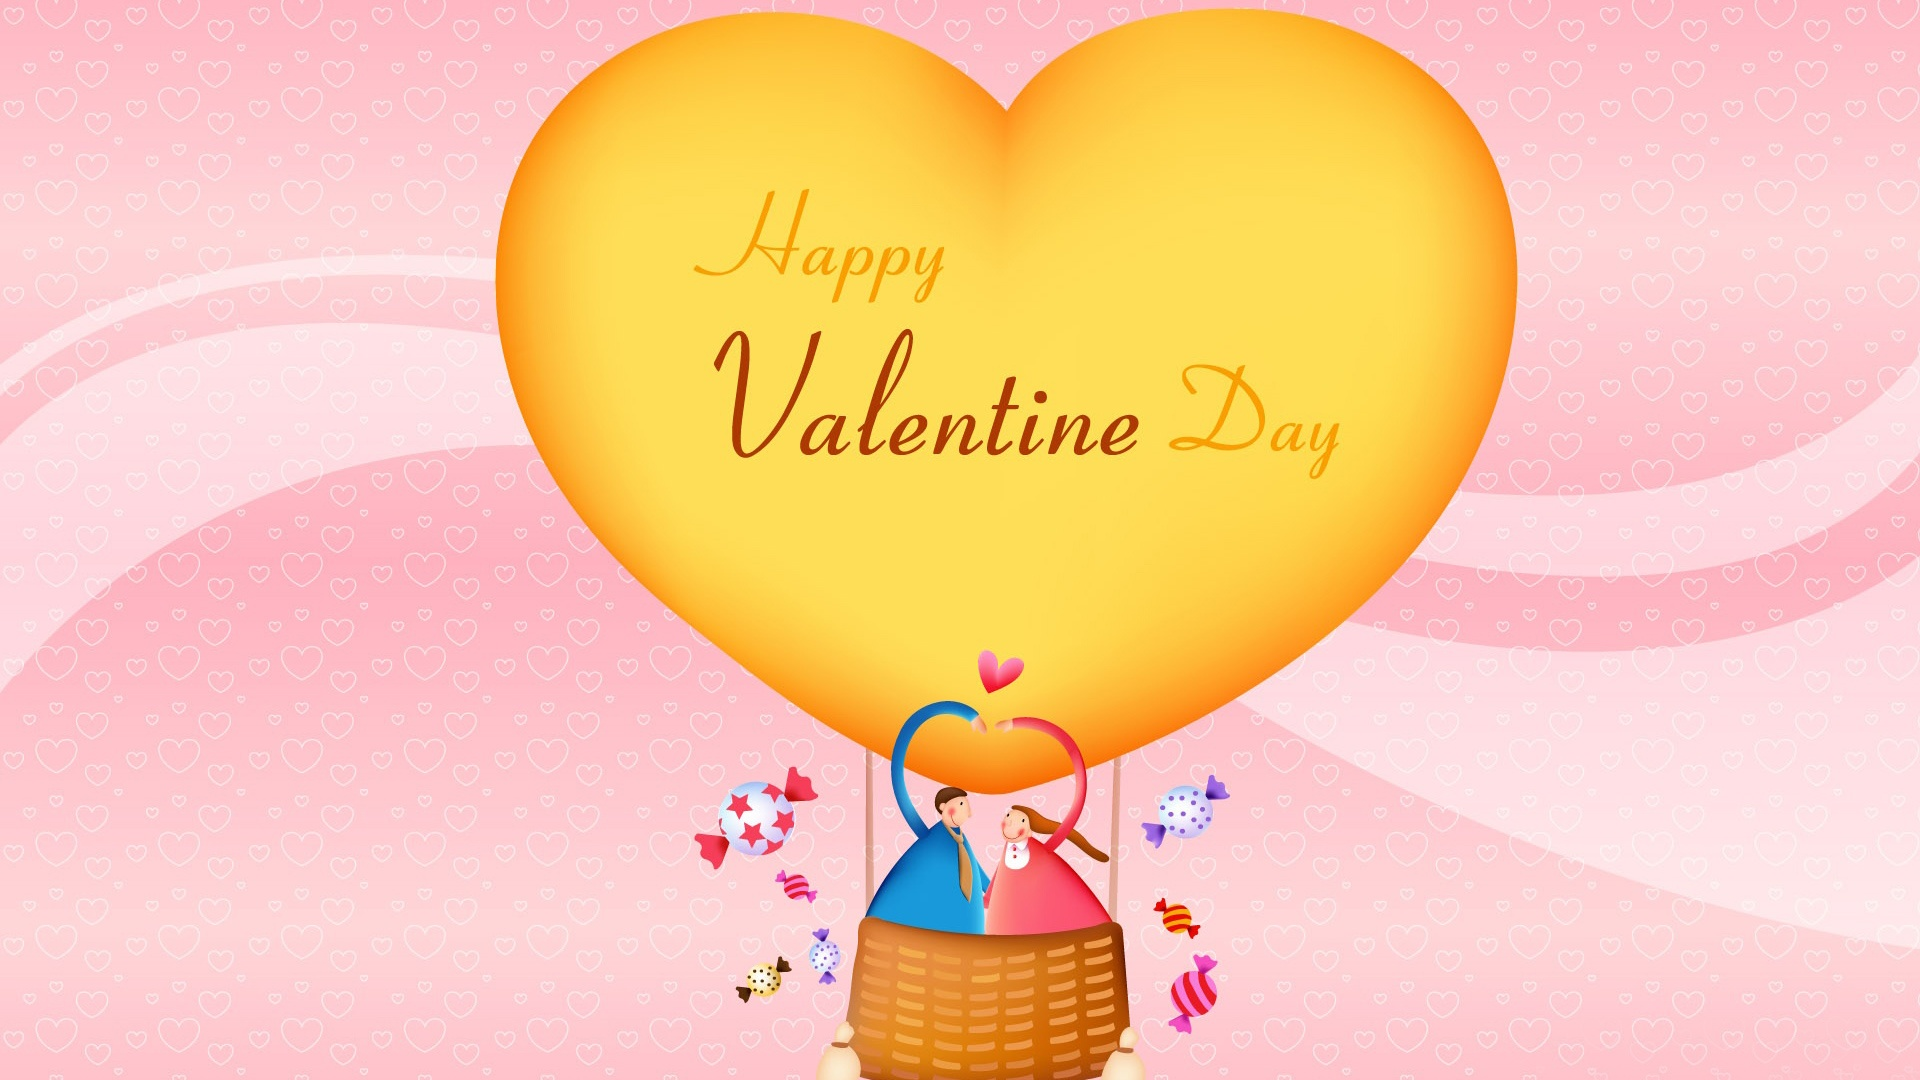 happy valentine u0027s day wallpapers in jpg format for free download